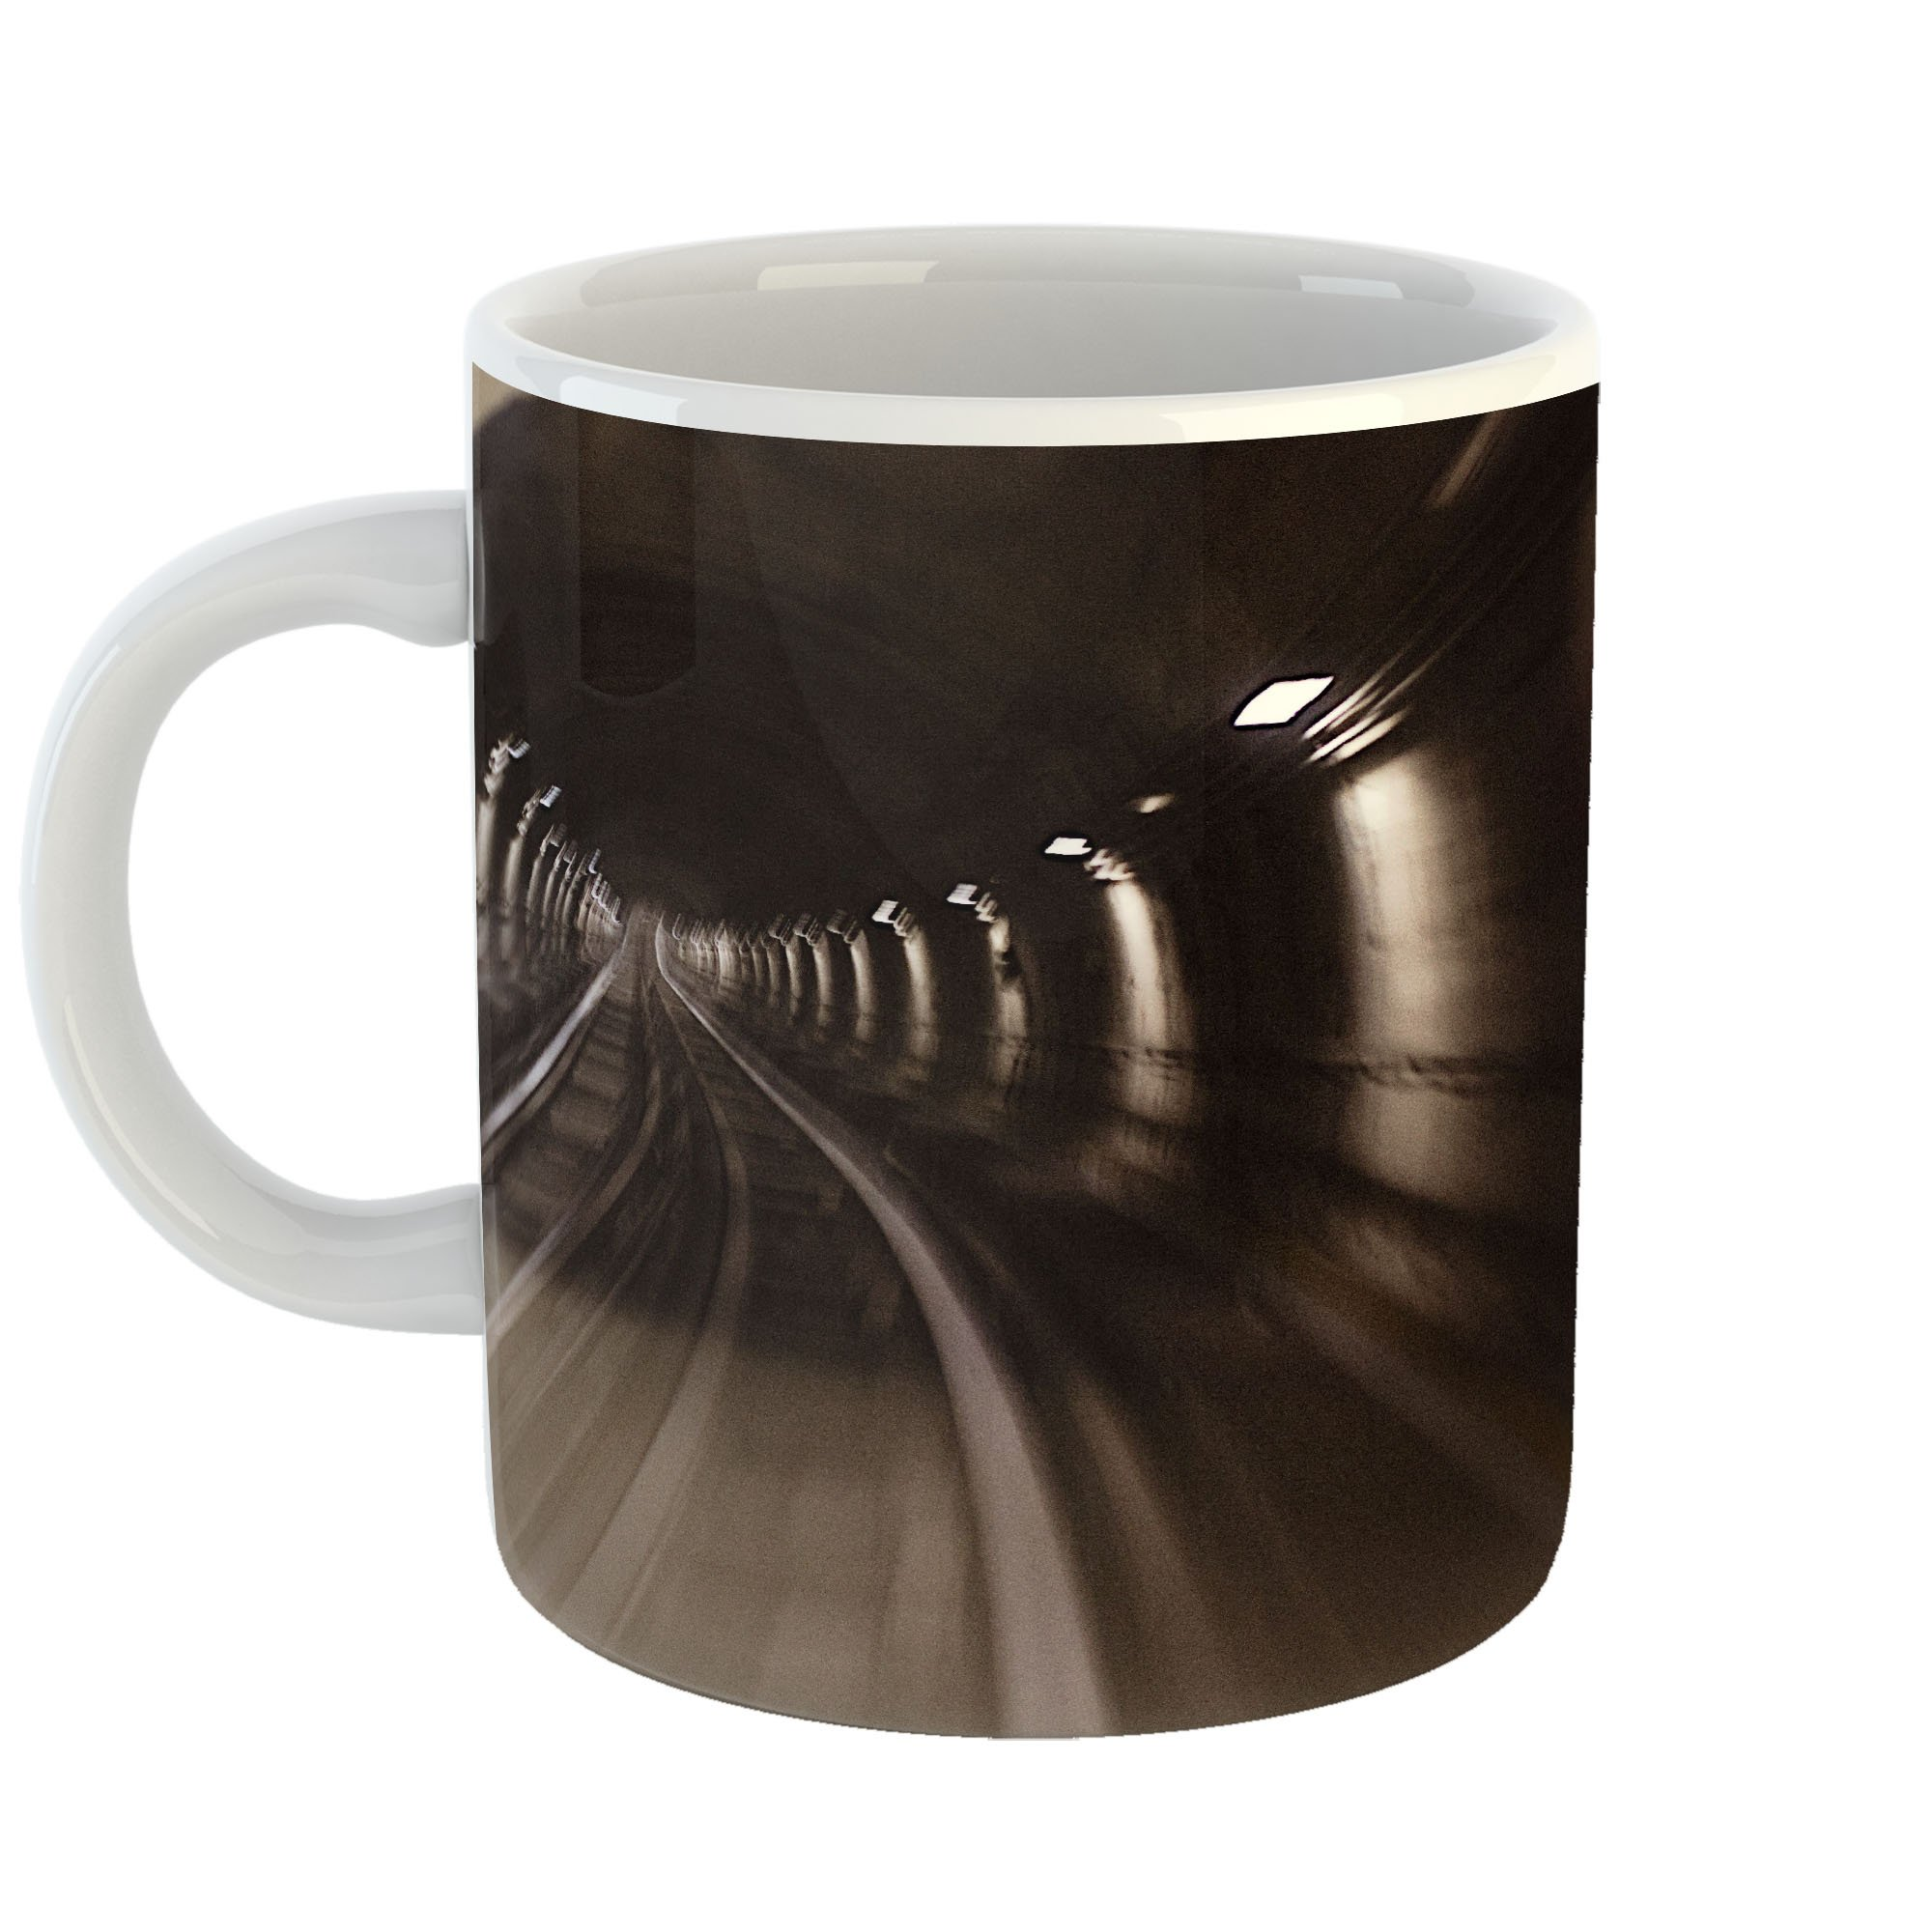 Westlake Art - Line Spa - 11oz Coffee Cup Mug - Modern Picture Photography Artwork Home Office Birthday Gift - 11 Ounce (5CD3-553DF)